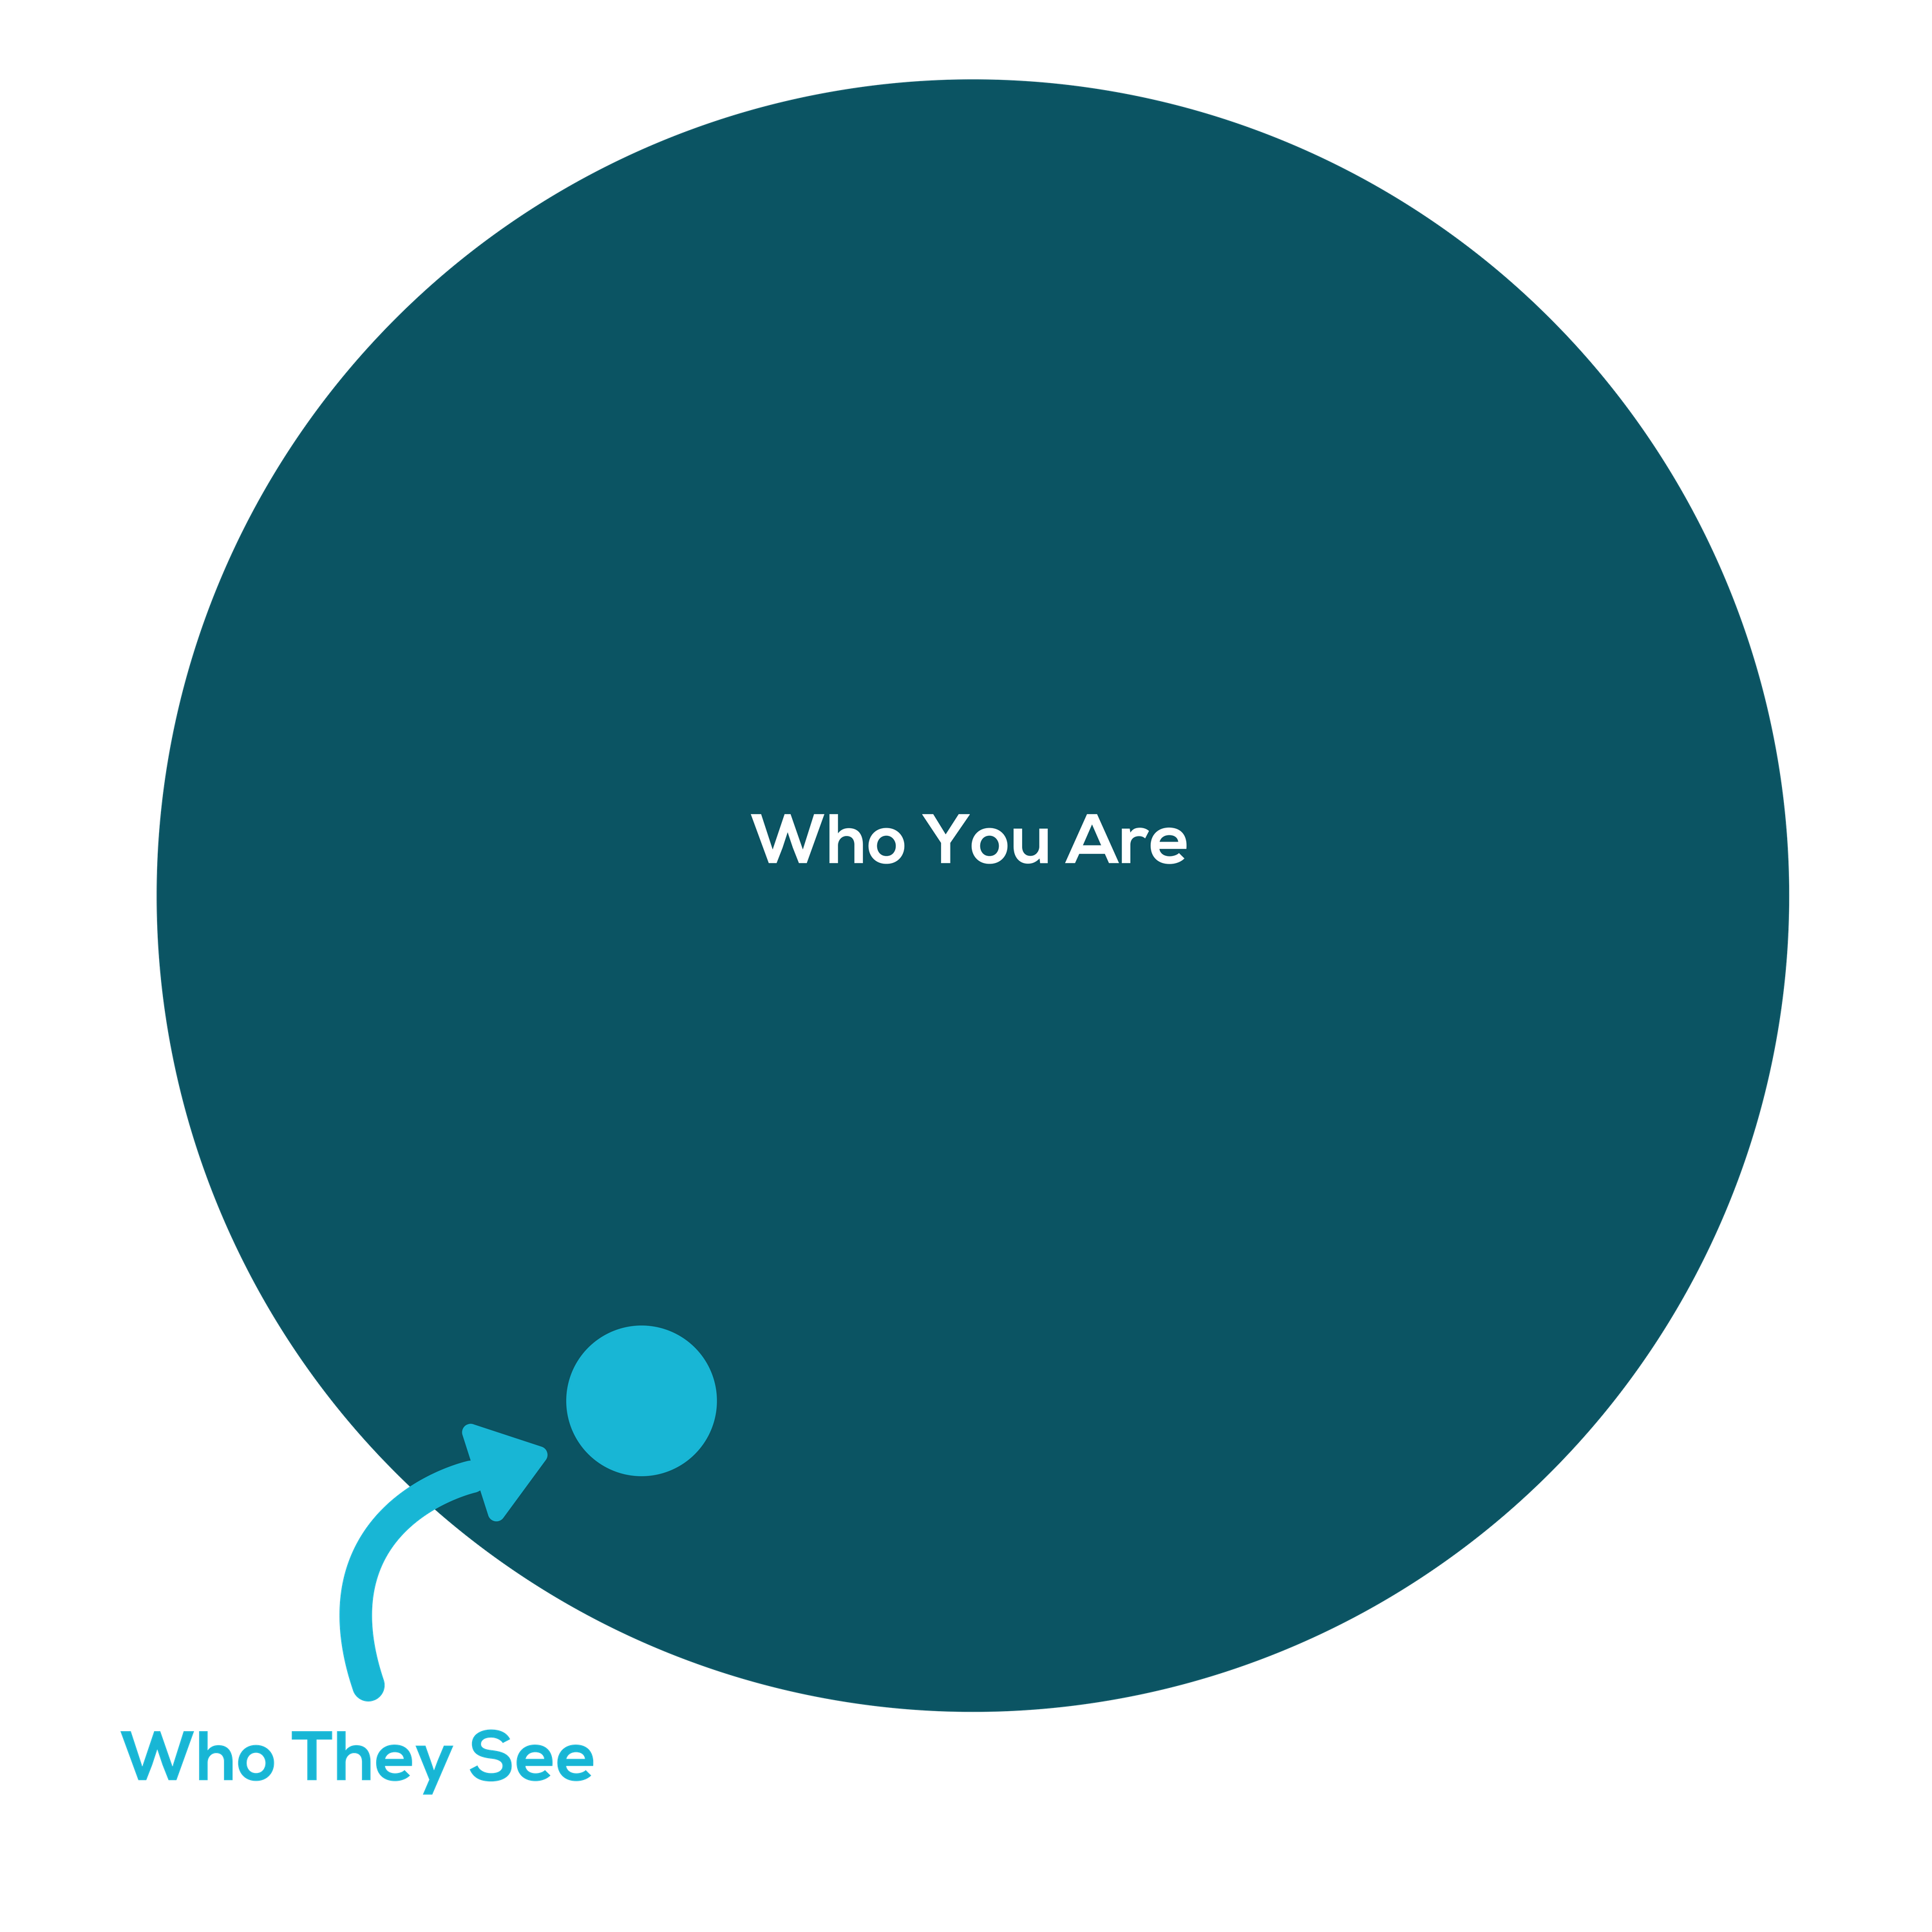 who-you-are-who-they-see.png